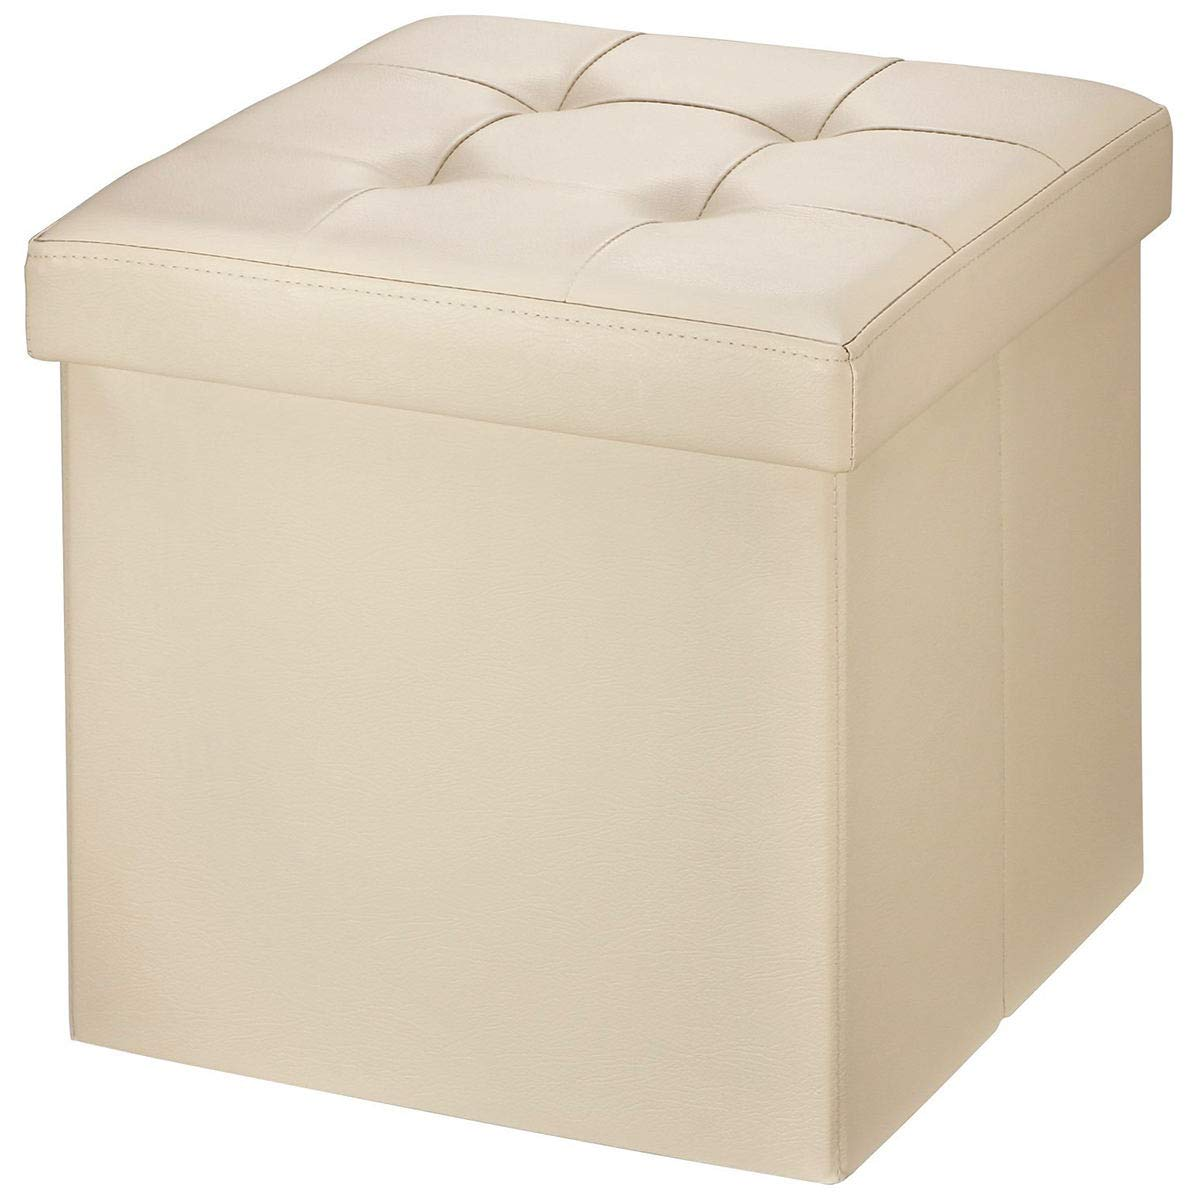 15X15X15 Beige BRIAN /& DANY Faux Leather Folding Storage Ottoman Bench Seat Foot Rest Stool Coffee Table